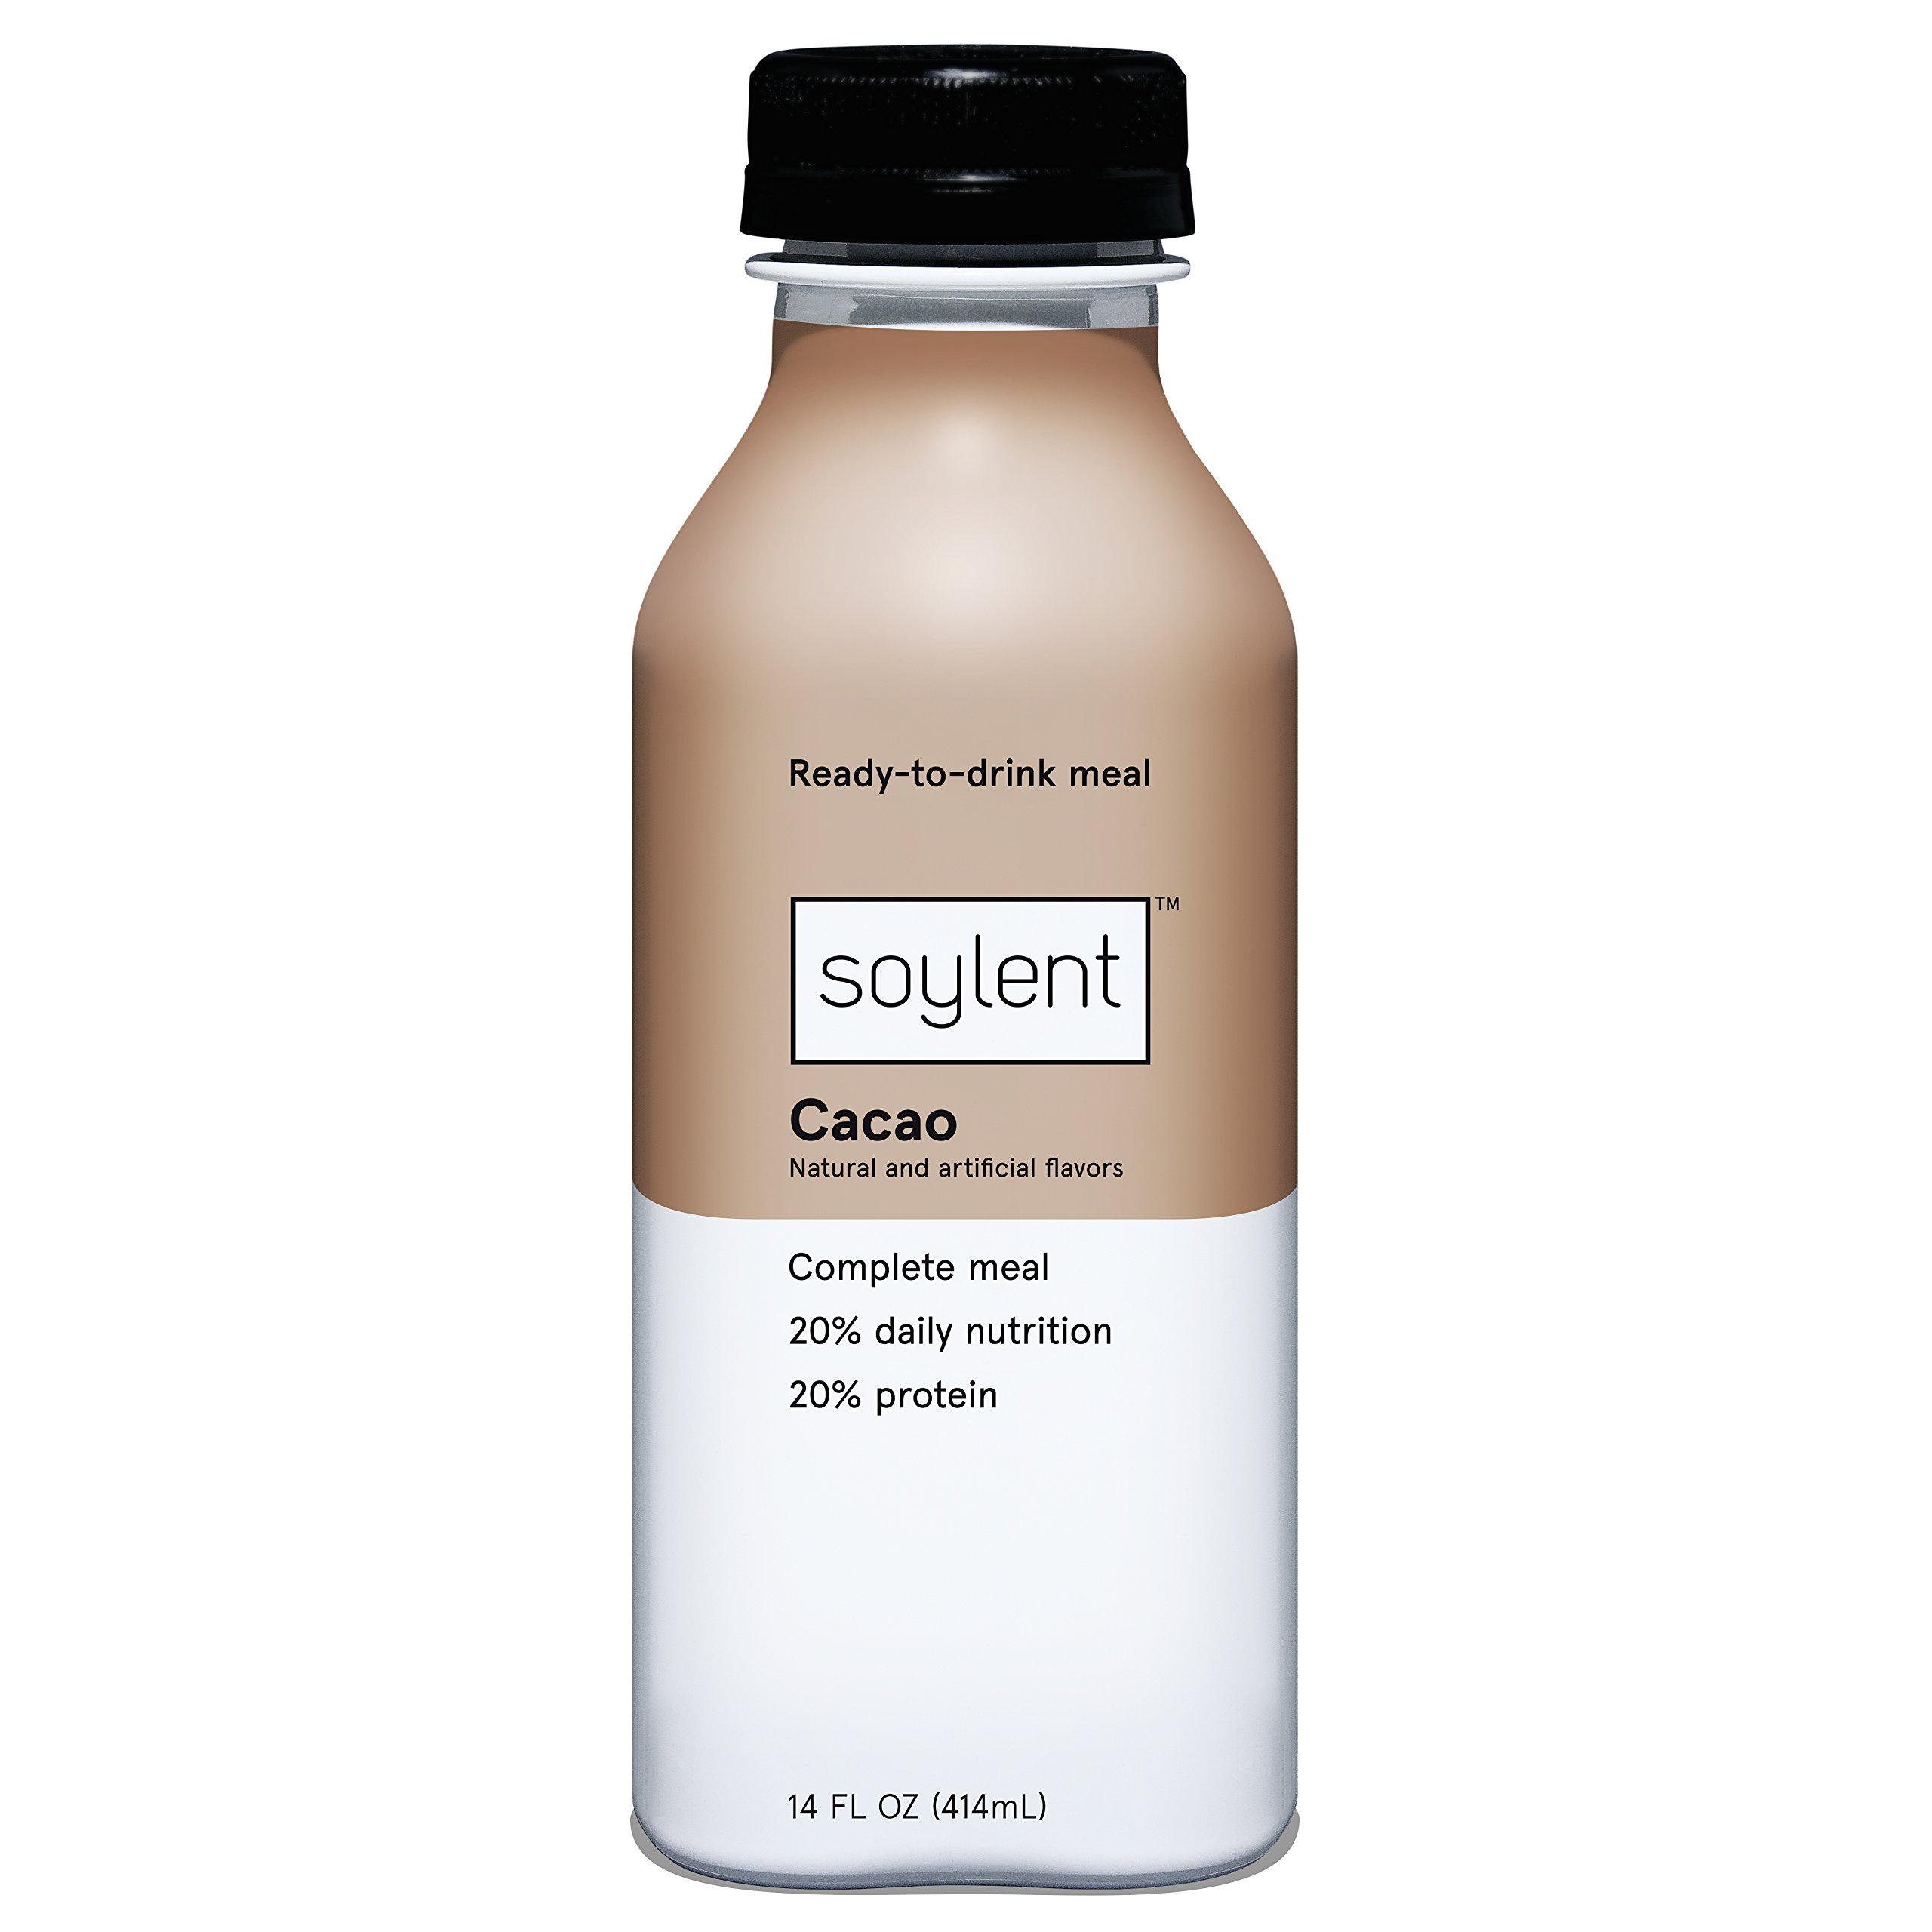 Soylent Meal Replacement Drink, Cacao, 14 oz